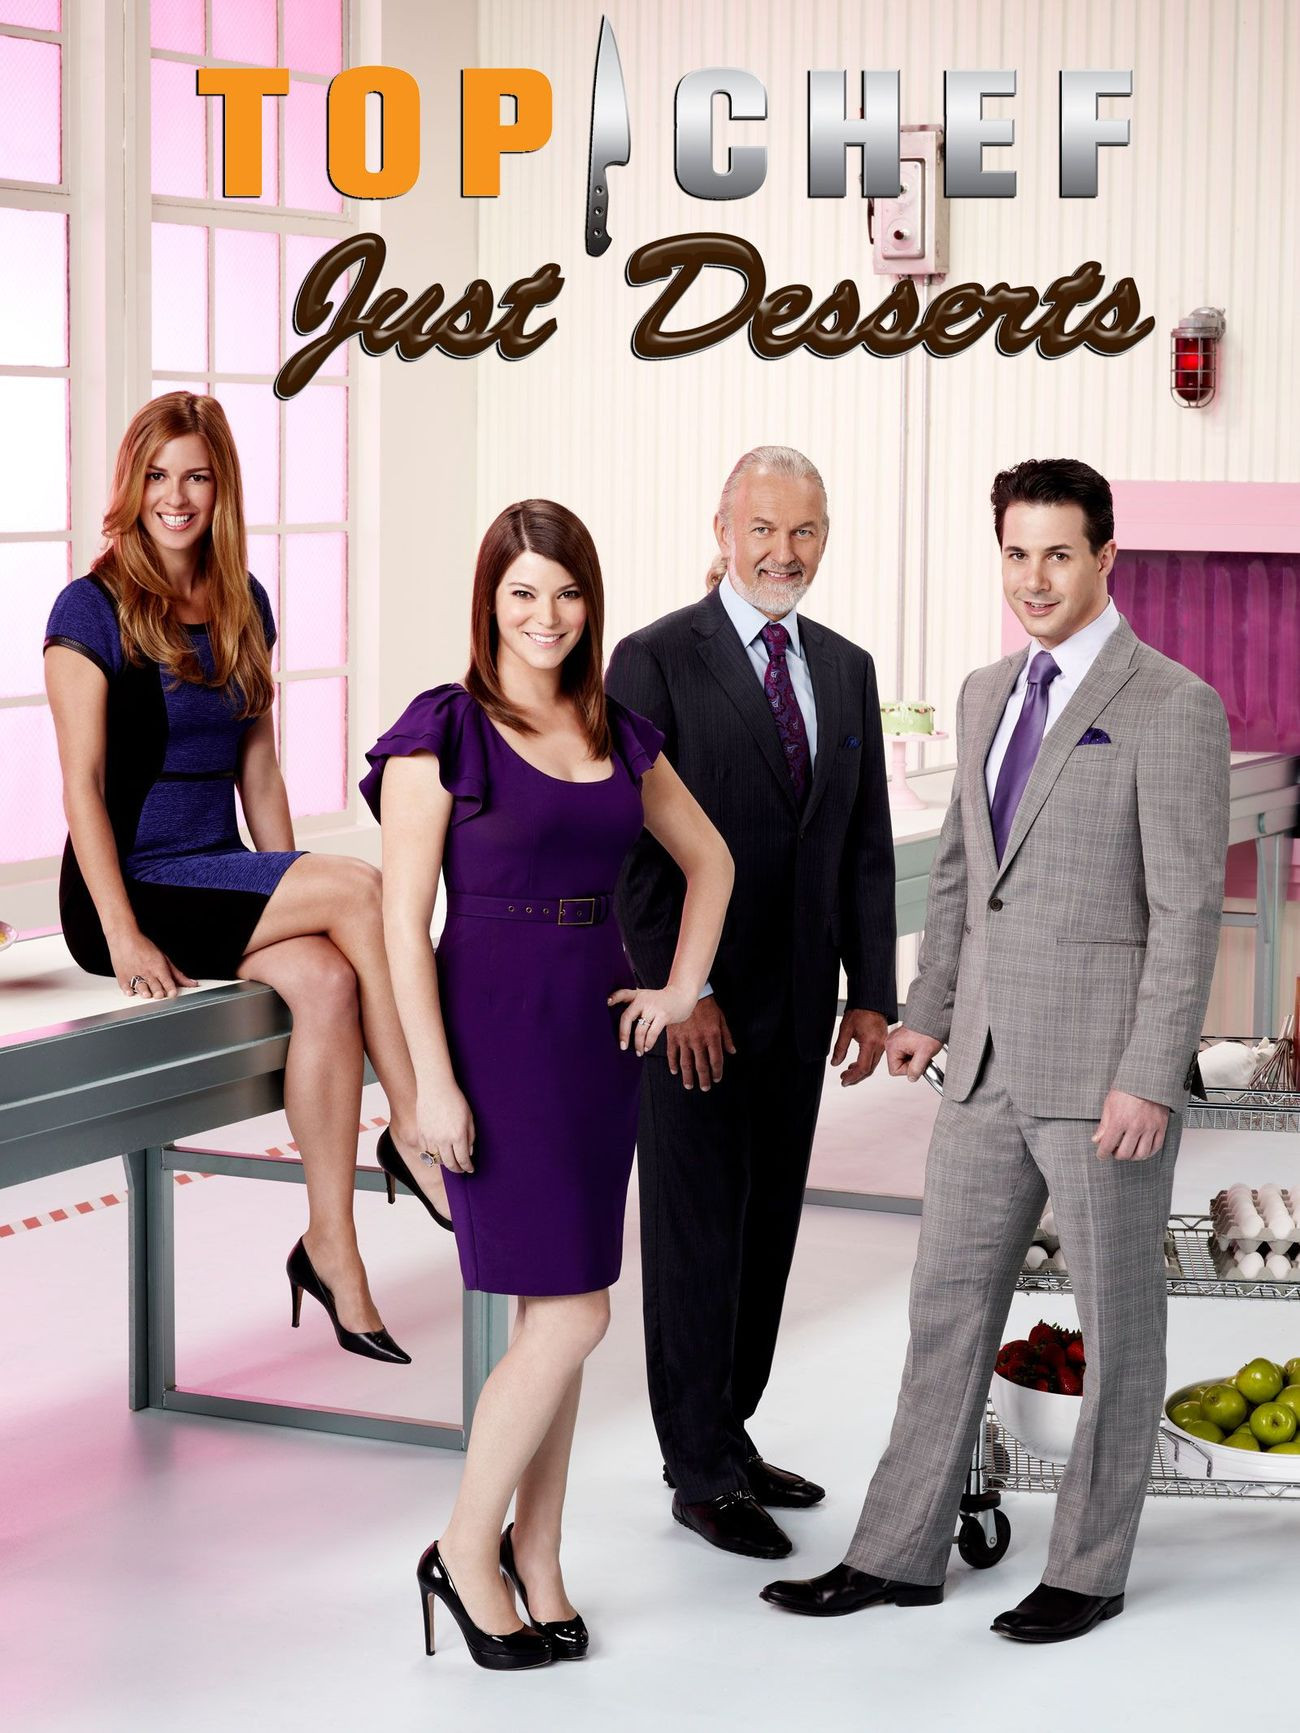 Top Chefs Just Desserts  Top Chef Just Desserts TV Show News Videos Full